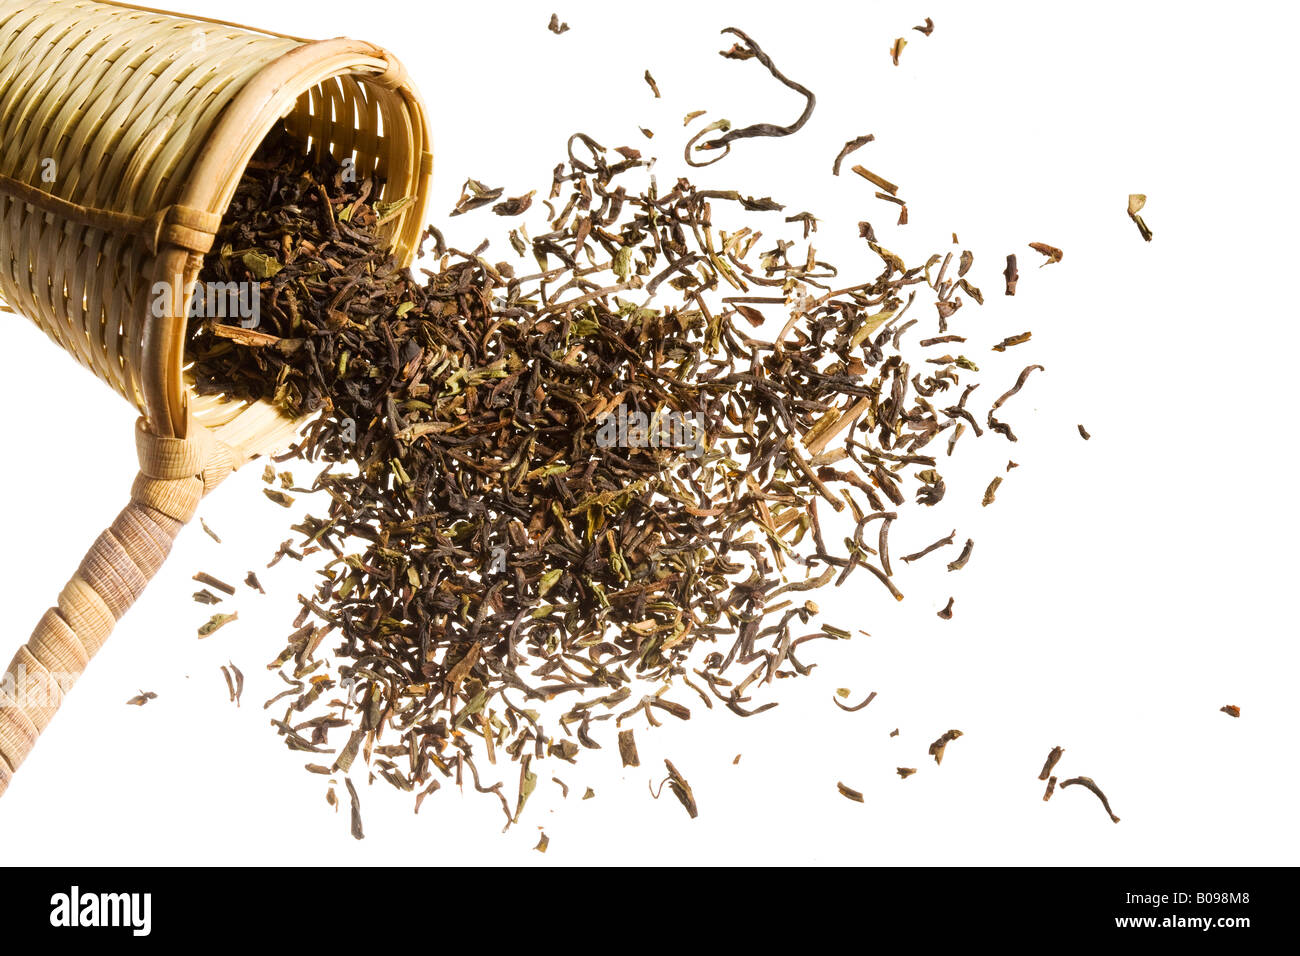 An scooper full of raw tea overflowing. - Stock Image